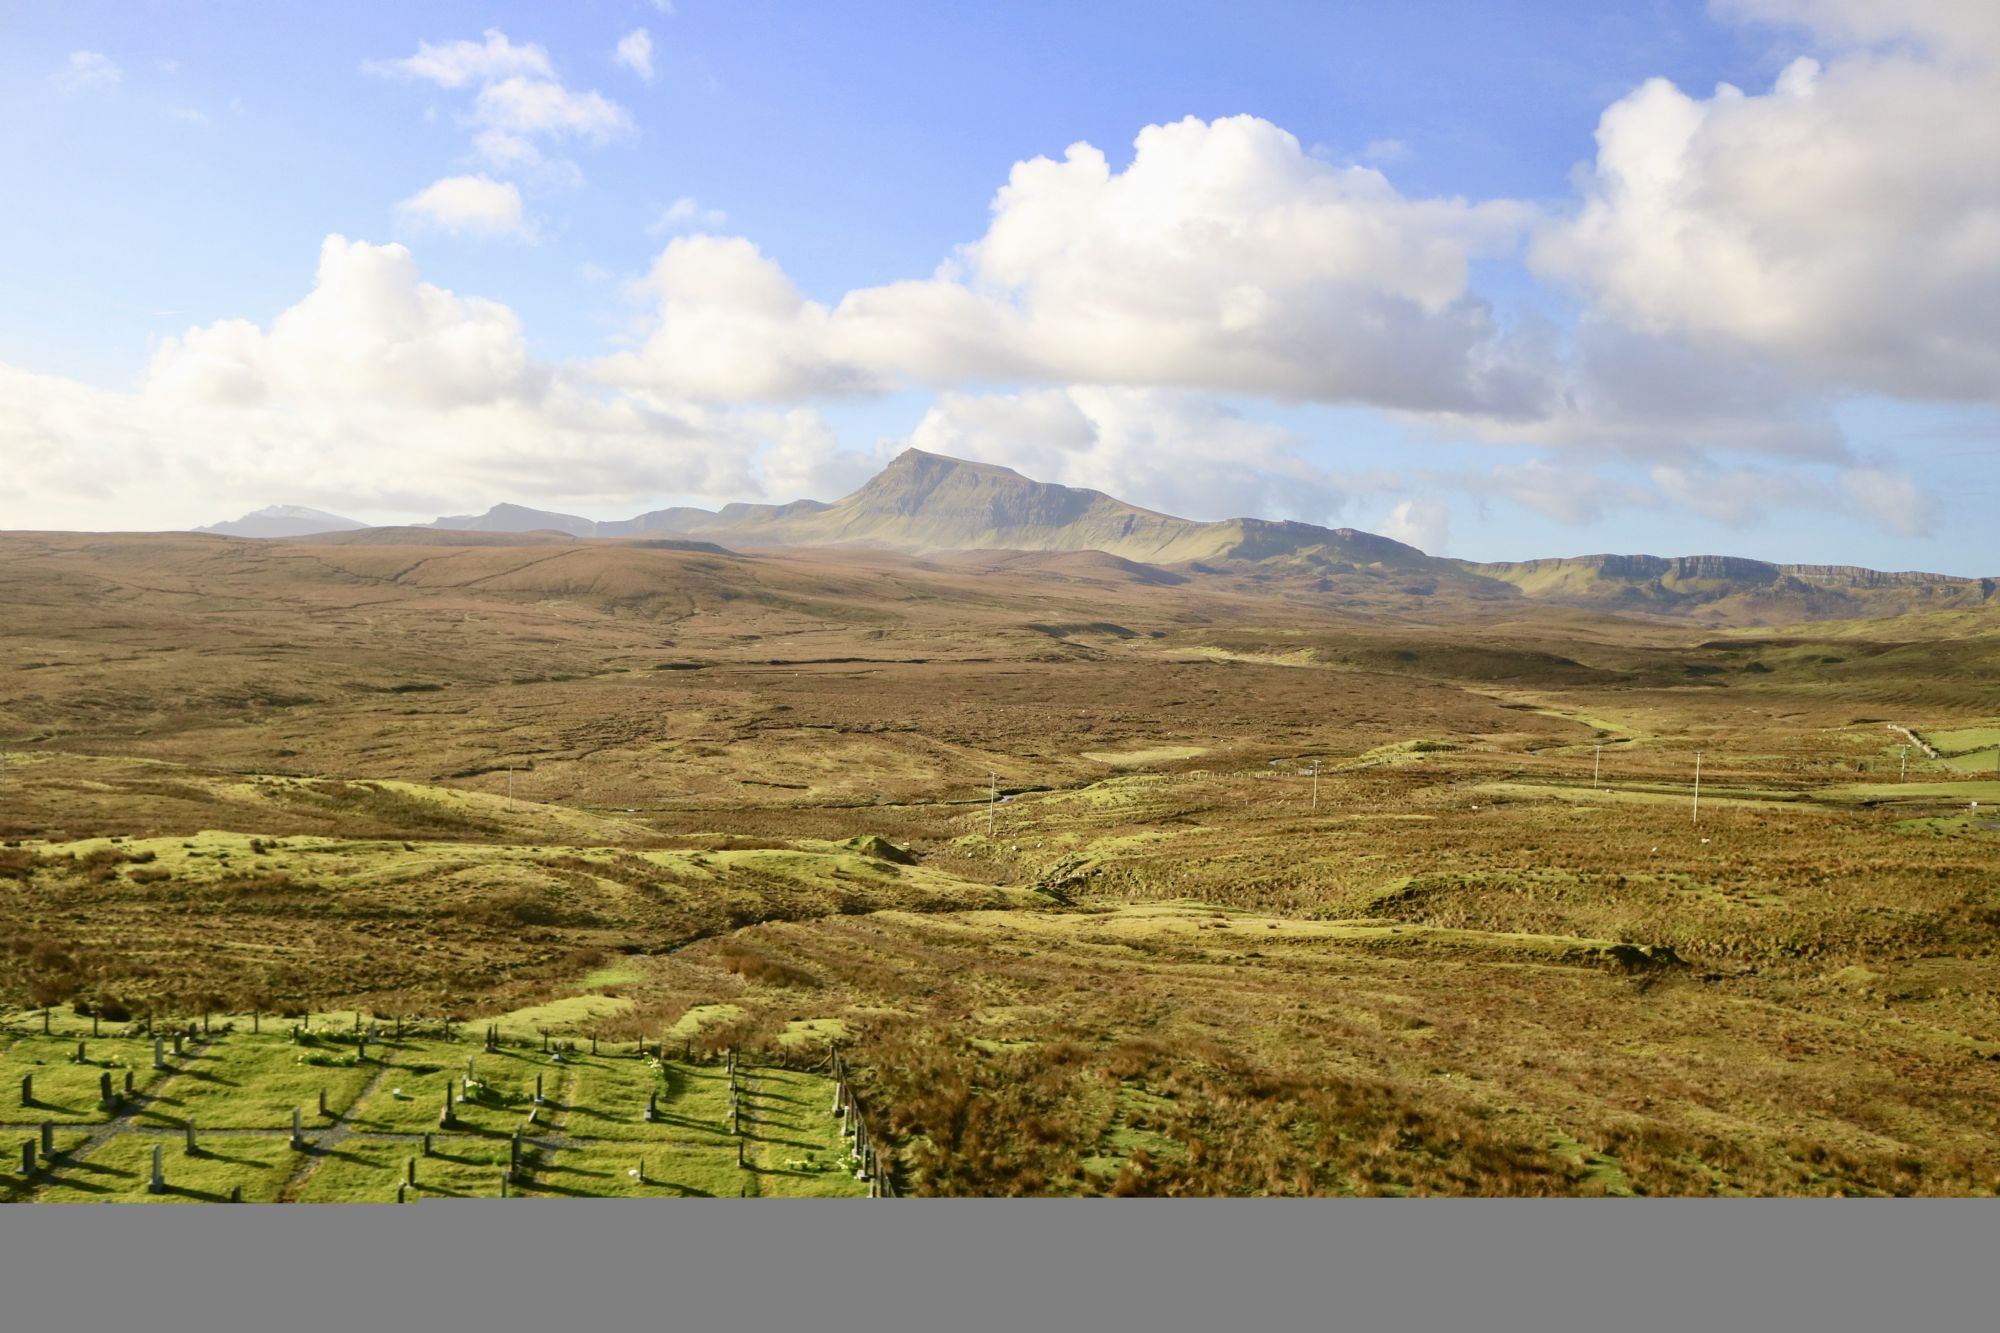 Enroute to the Quiraing